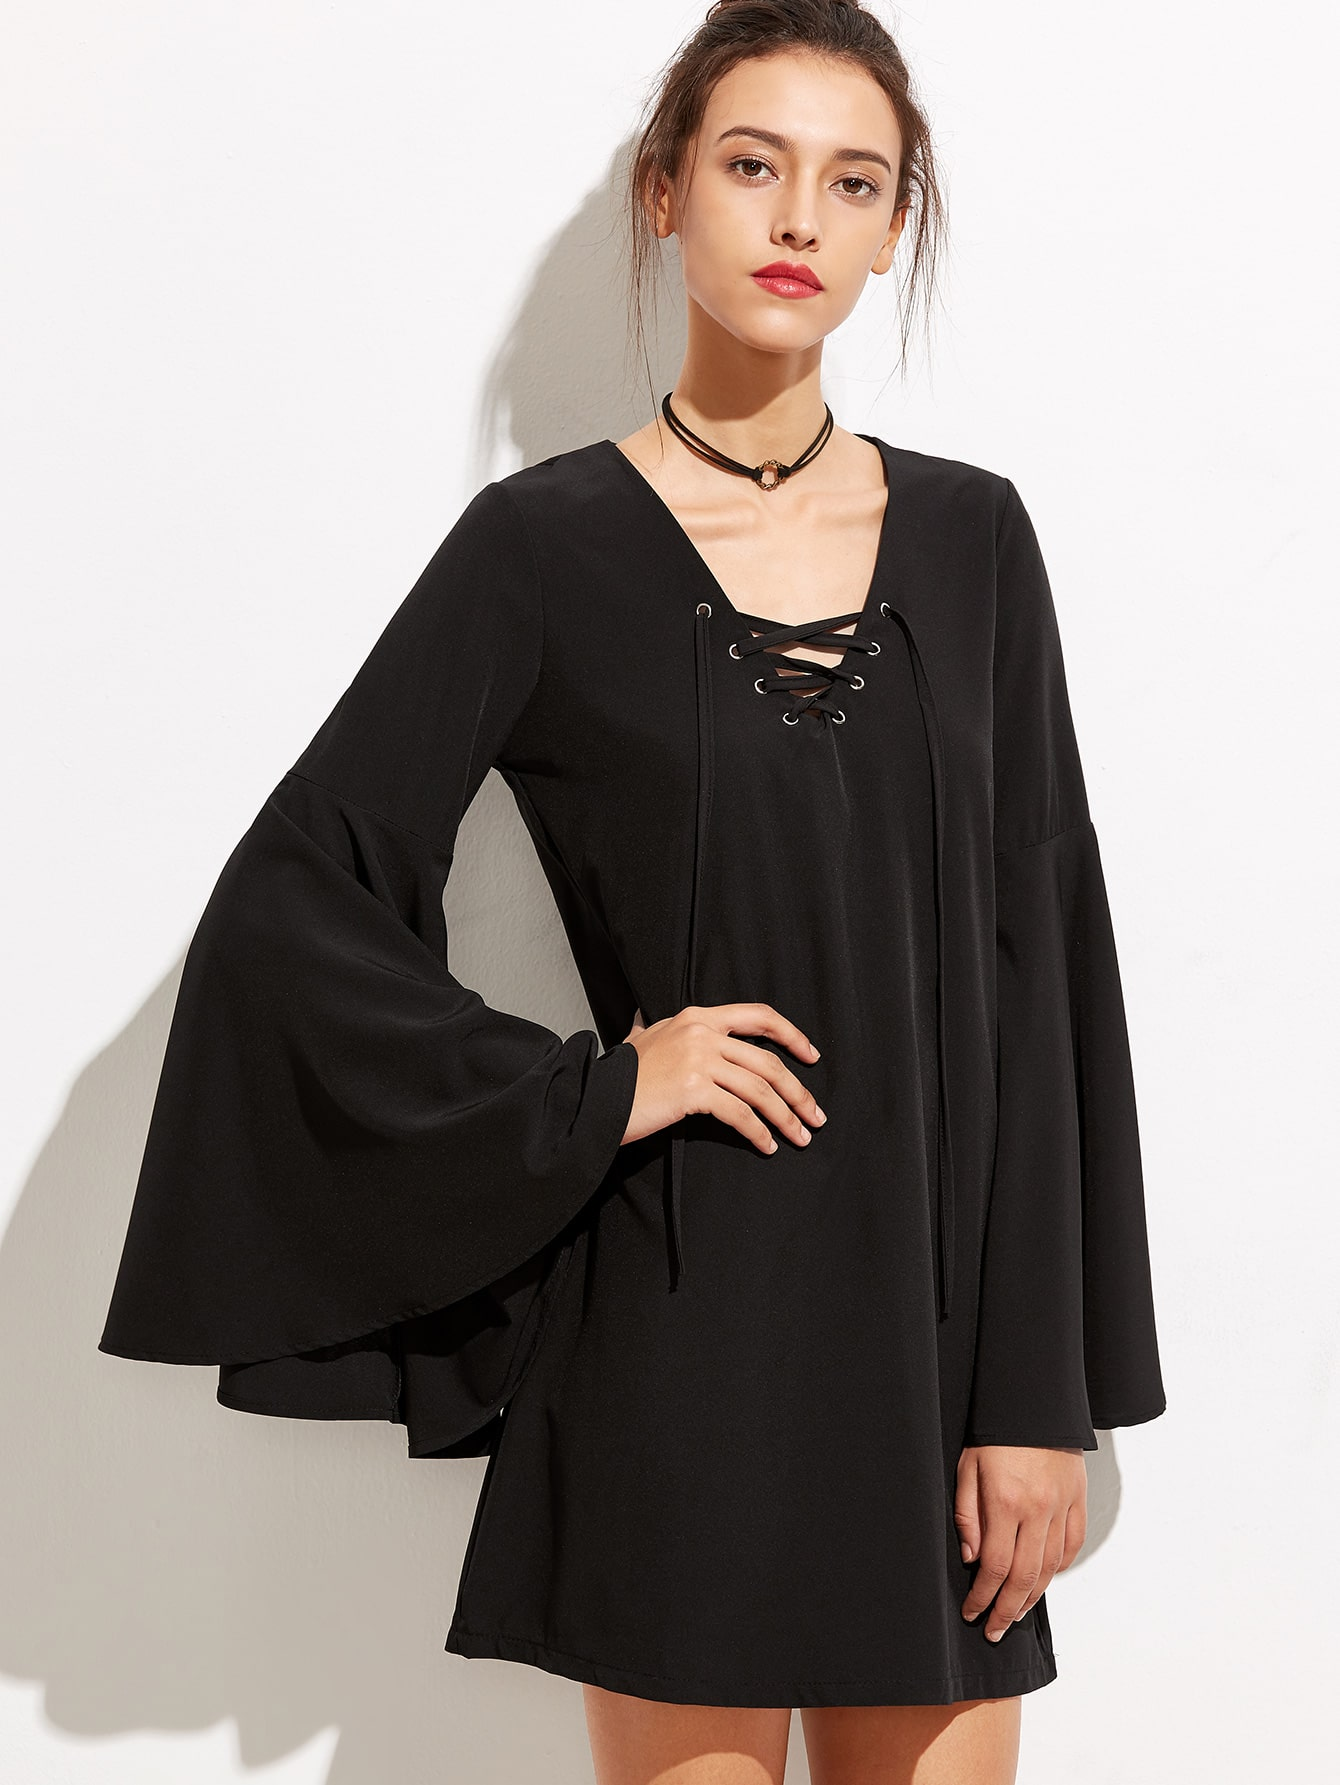 50ccd1e1094 Lace Up Black Dresses - Gomes Weine AG